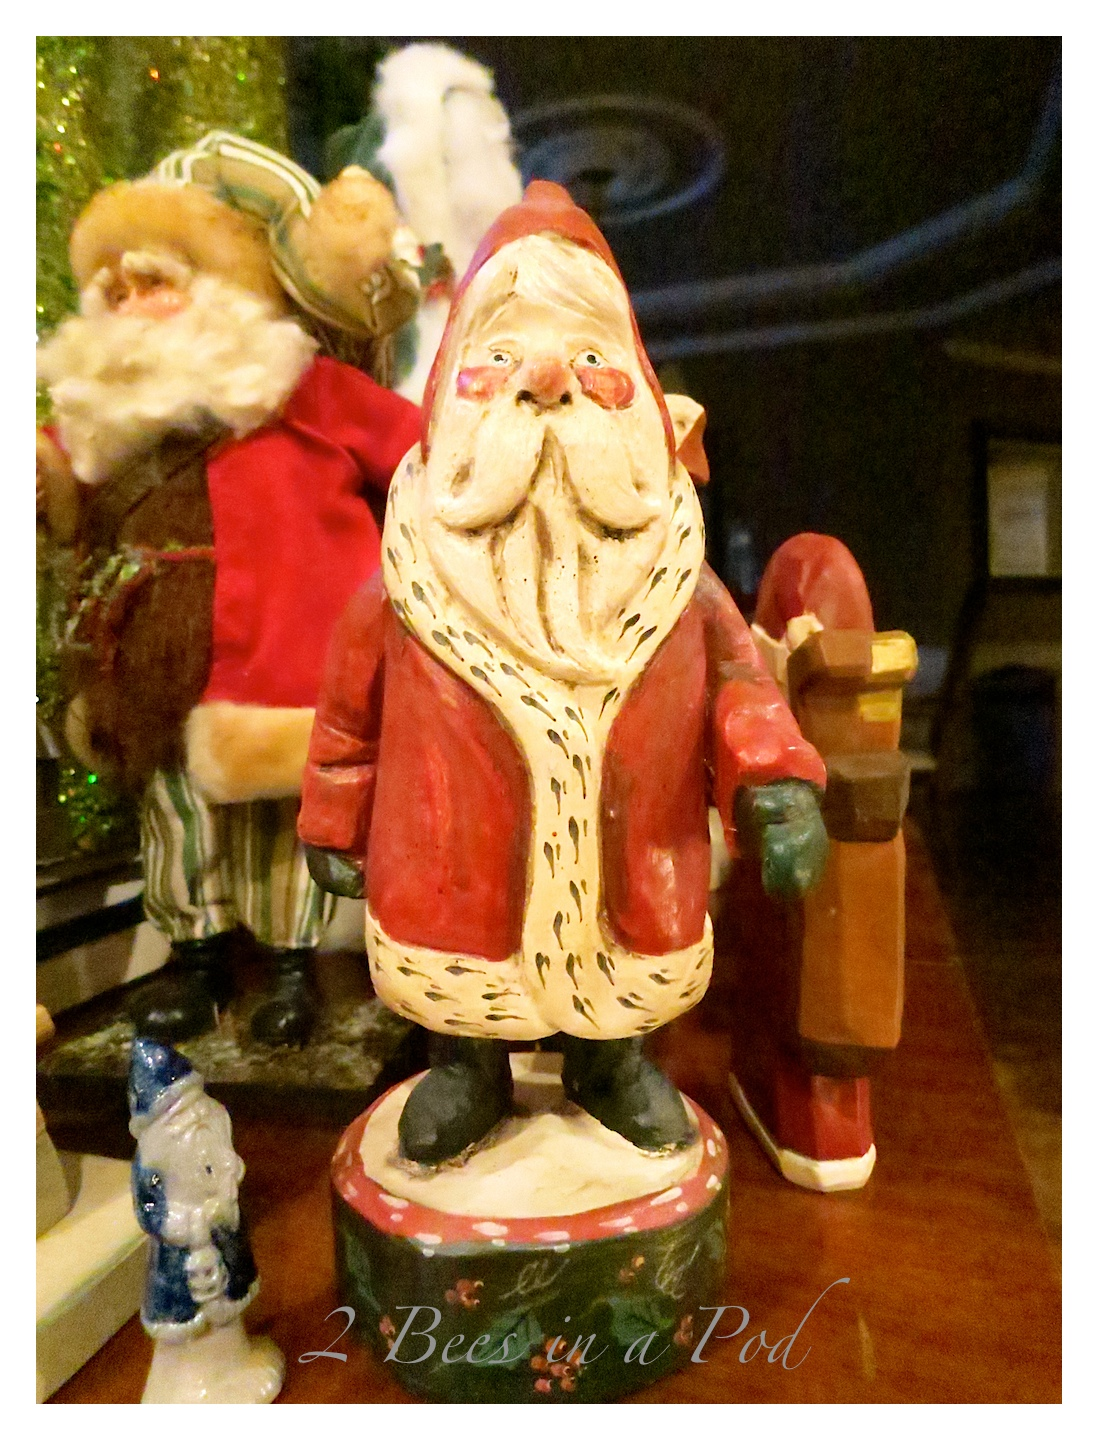 Vintage Chalkware Santa Claus, hand painted